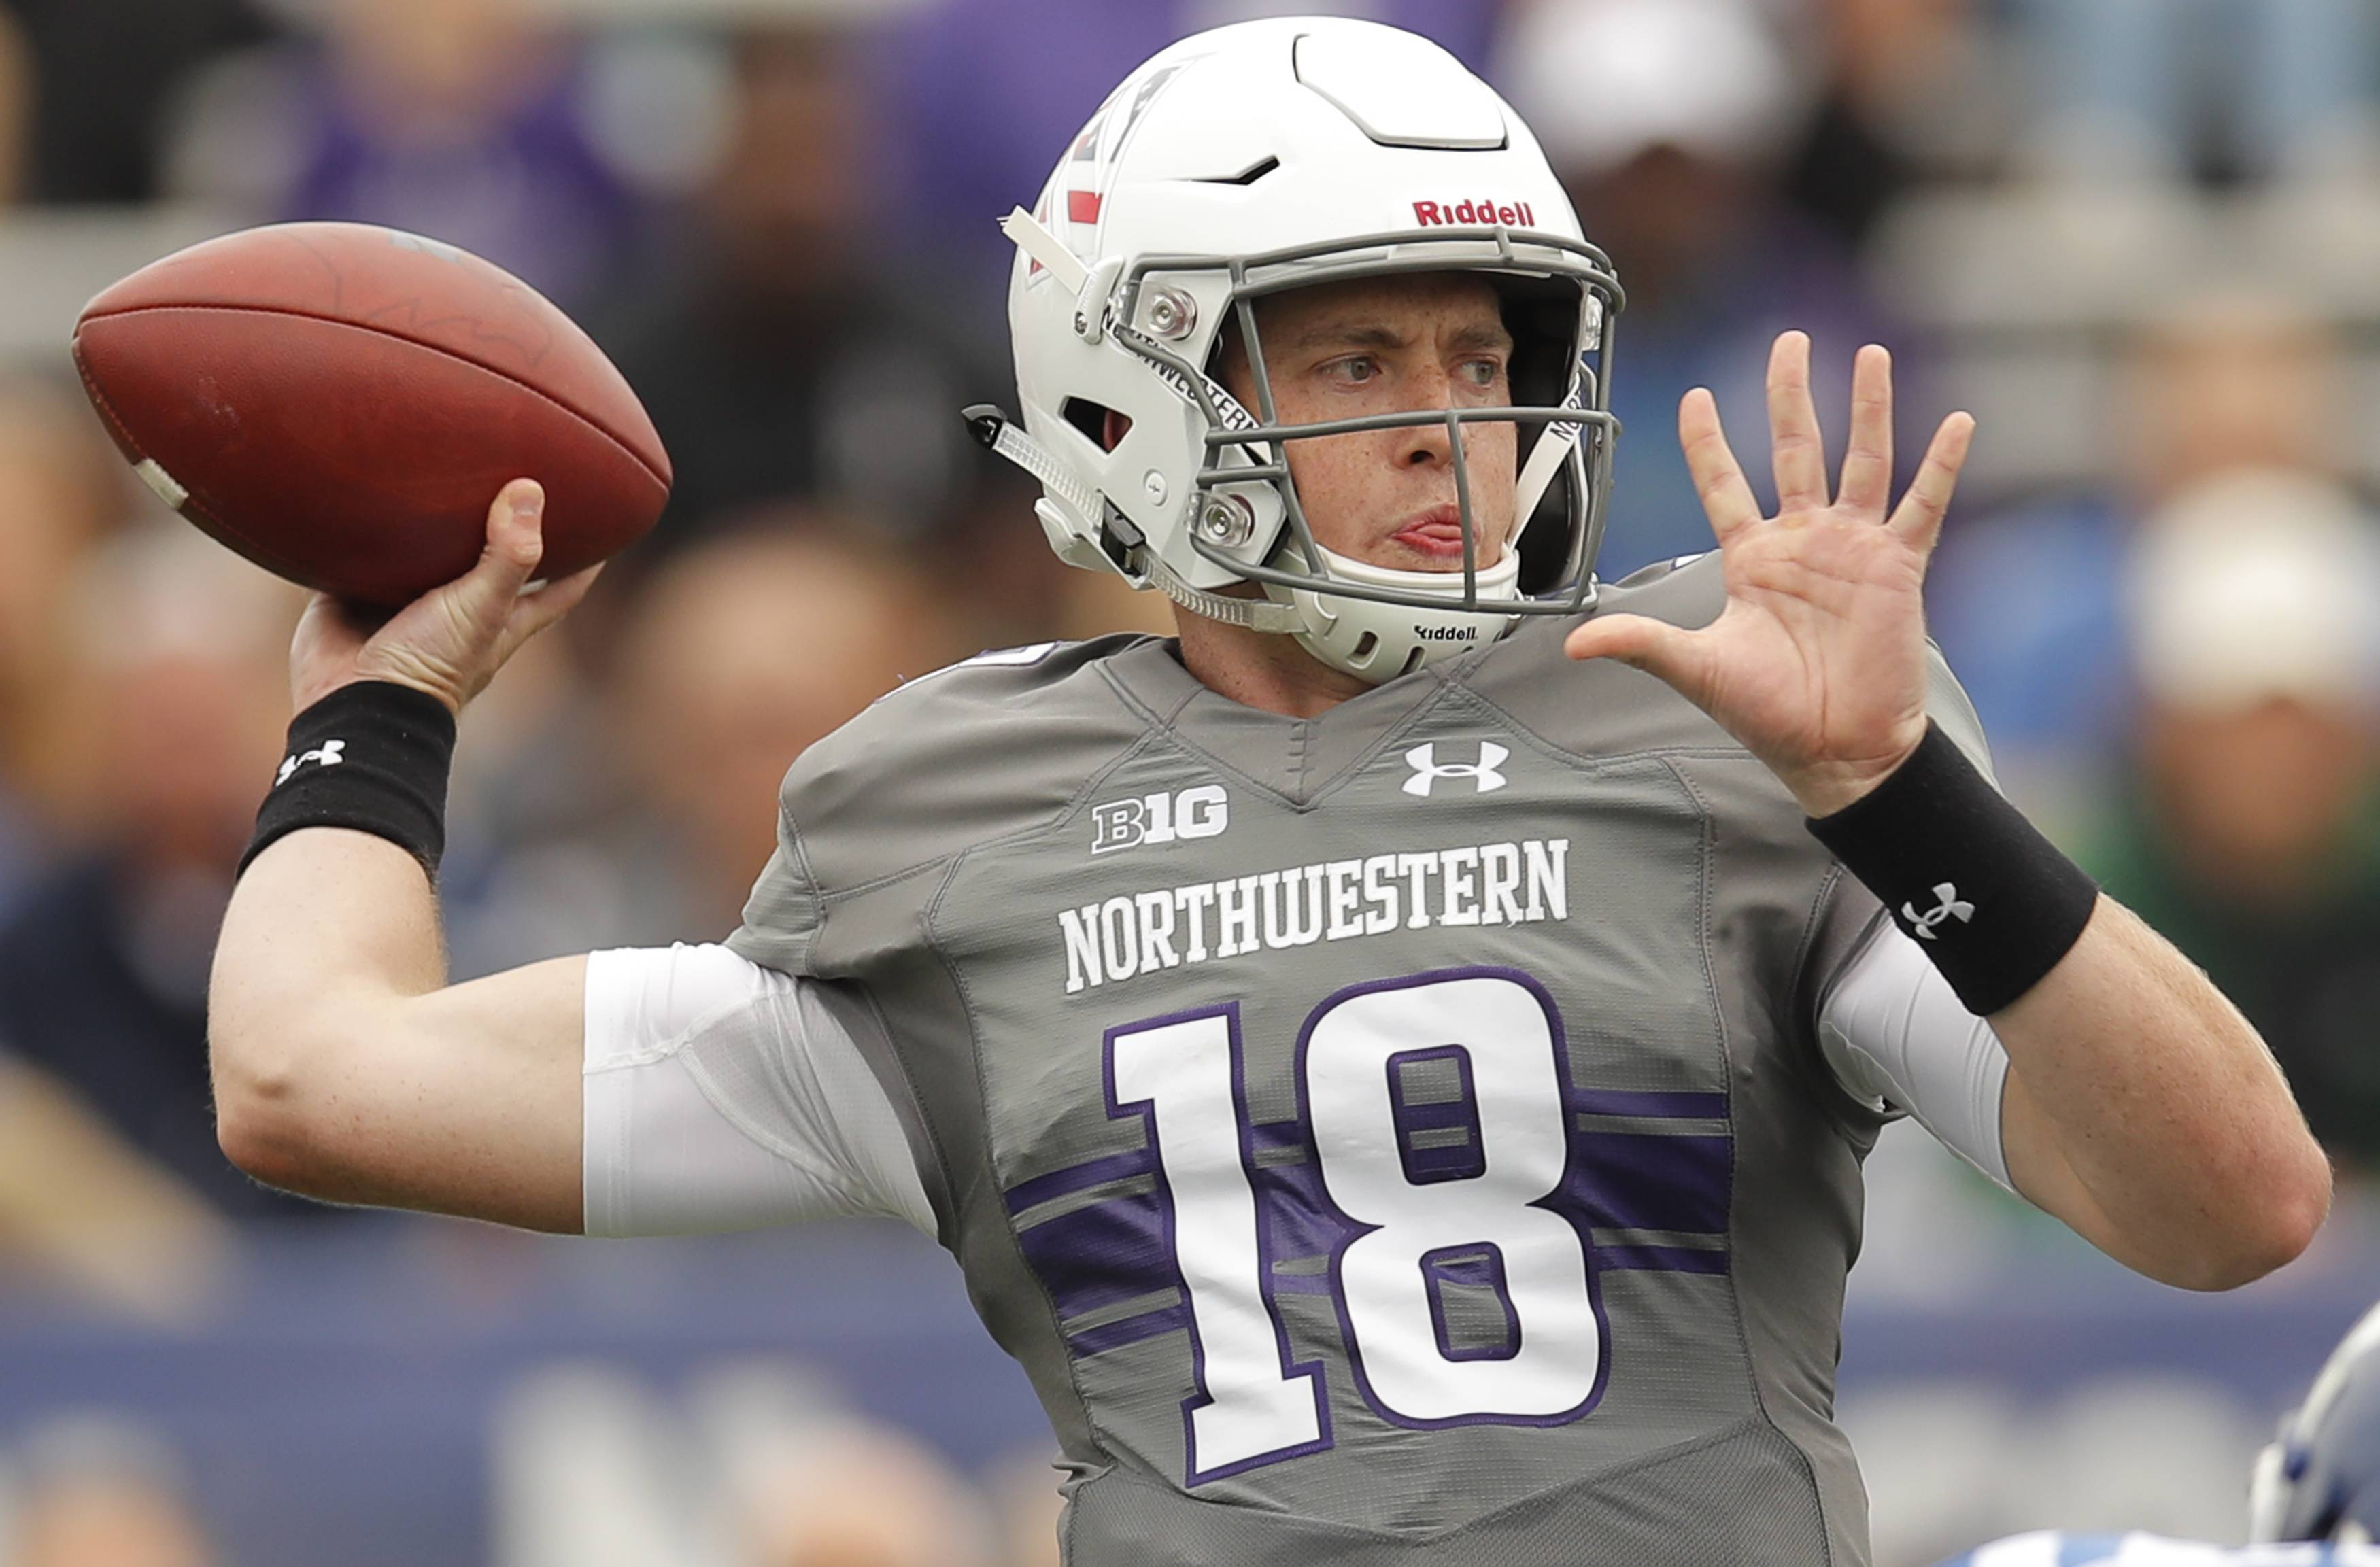 Jones throws for 3 TDs, Duke beats Northwestern 21-7